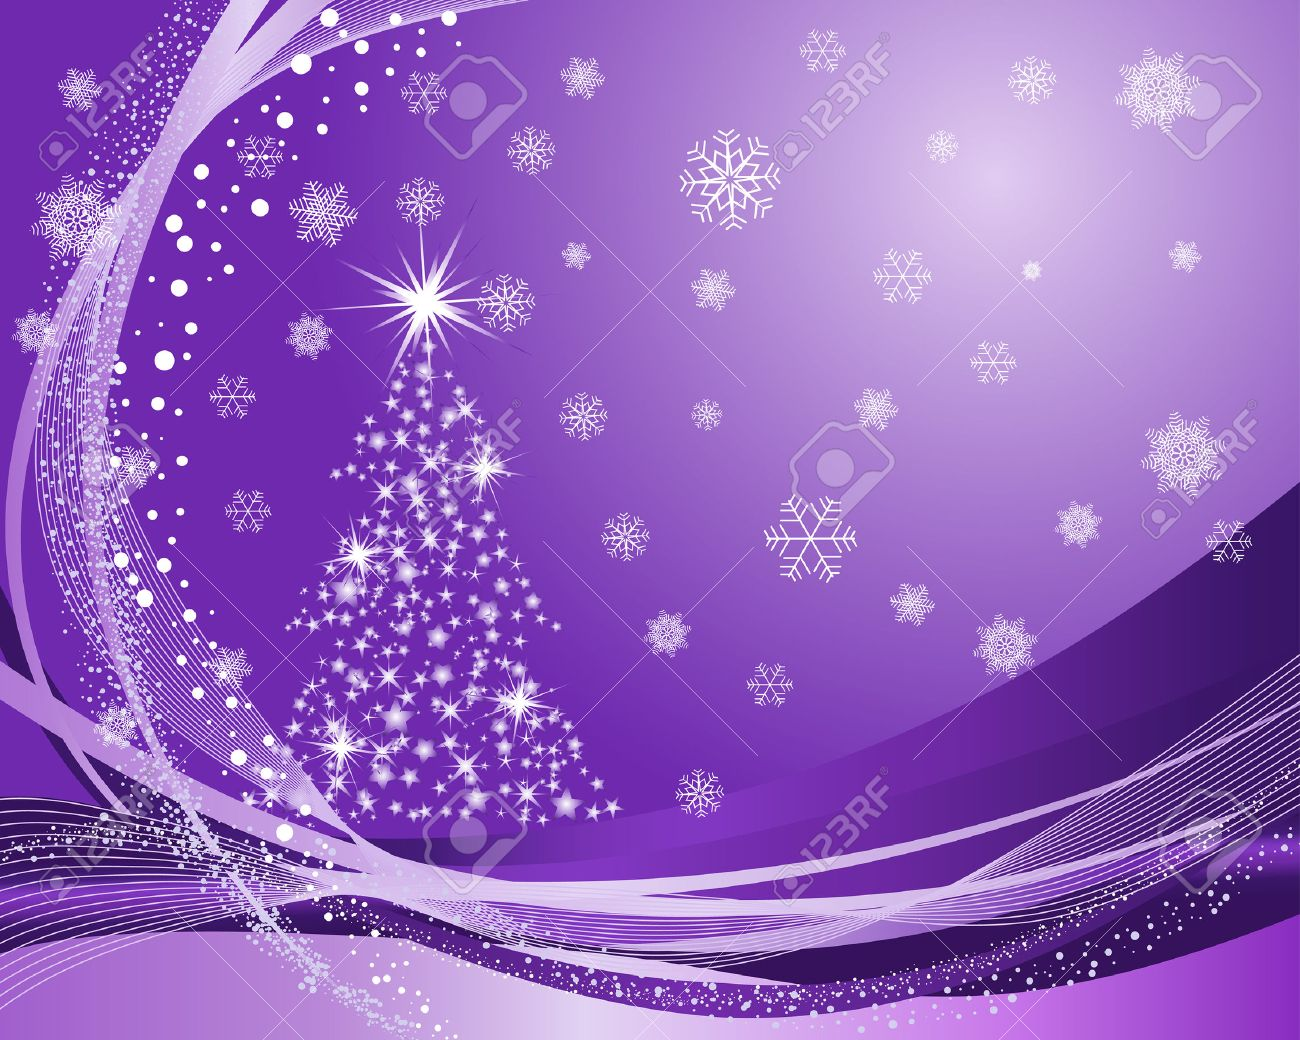 Beautiful vector christmas new year background for design use - Beautiful Vector Christmas New Year Background For Design Use Stock Vector 5804439